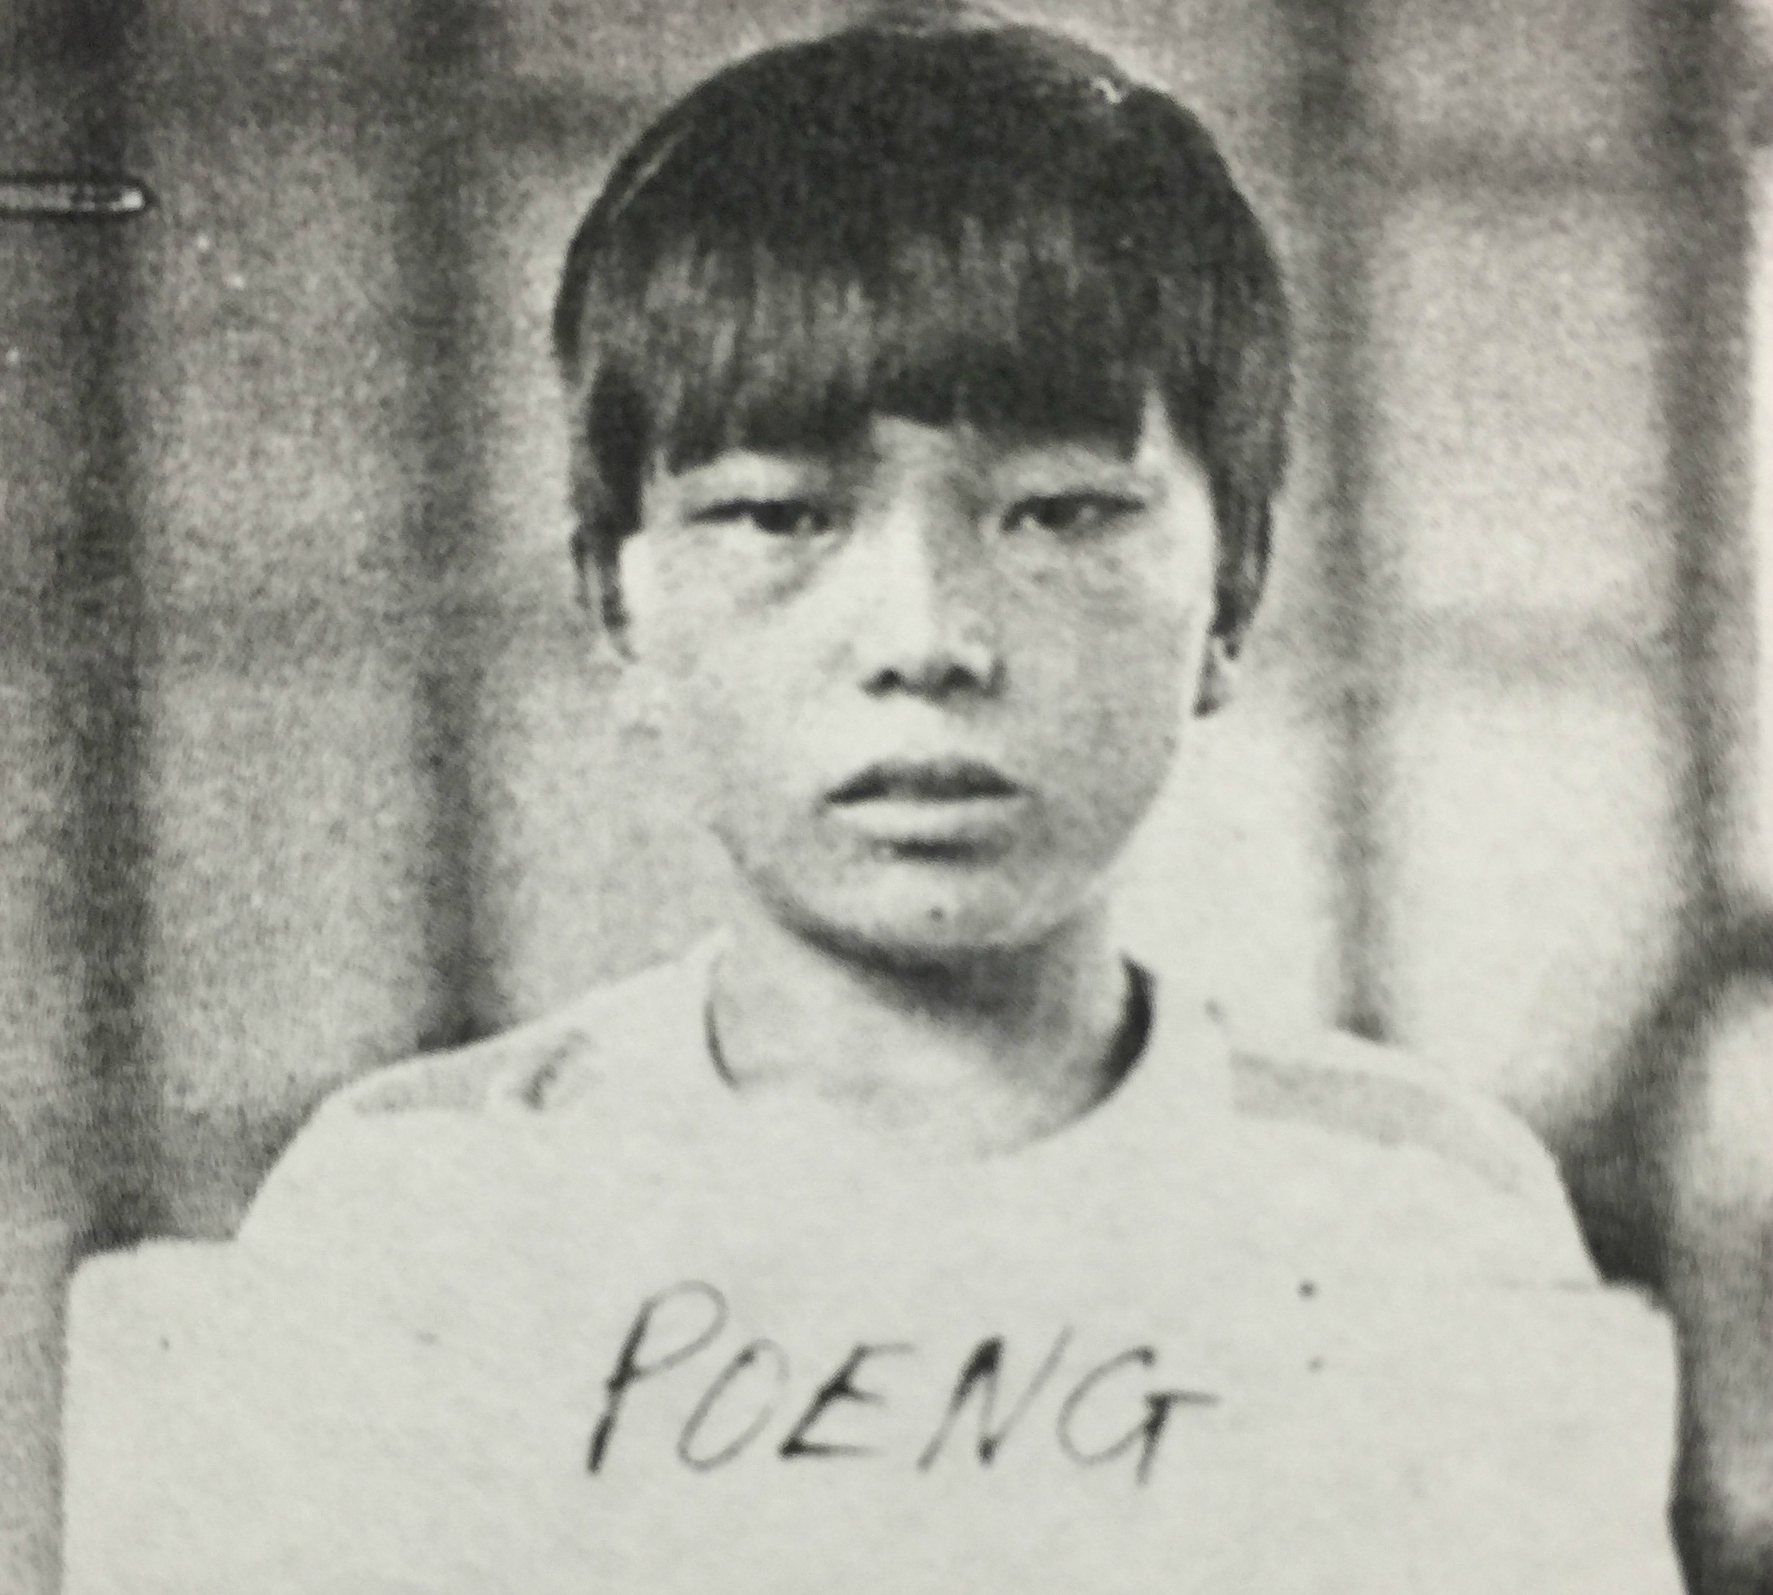 Mike Poeng´s refugee identification card, taken when he was 13 years old.